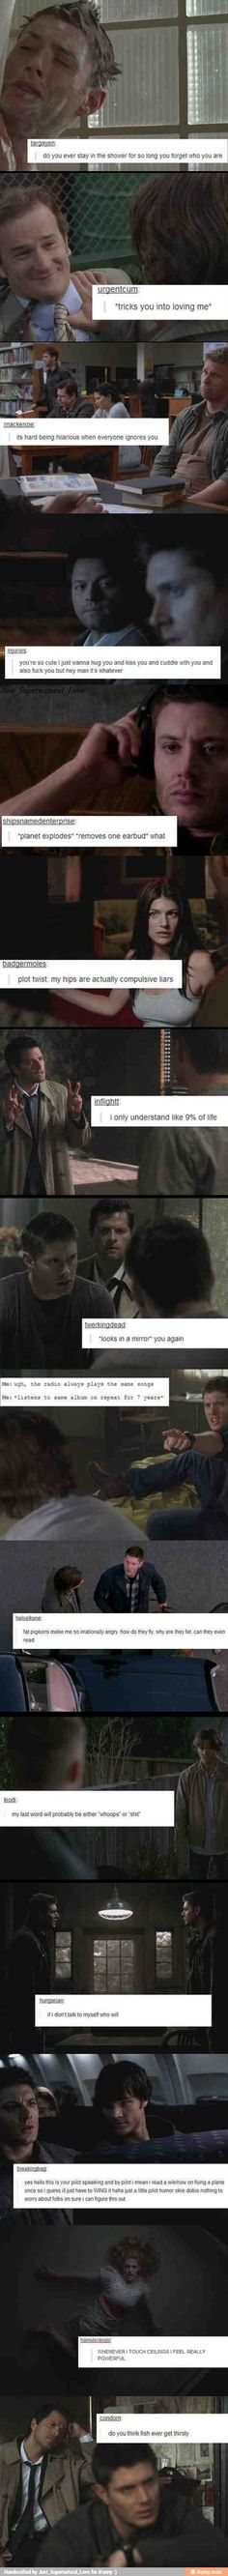 Supernatural + Tumblr Posts